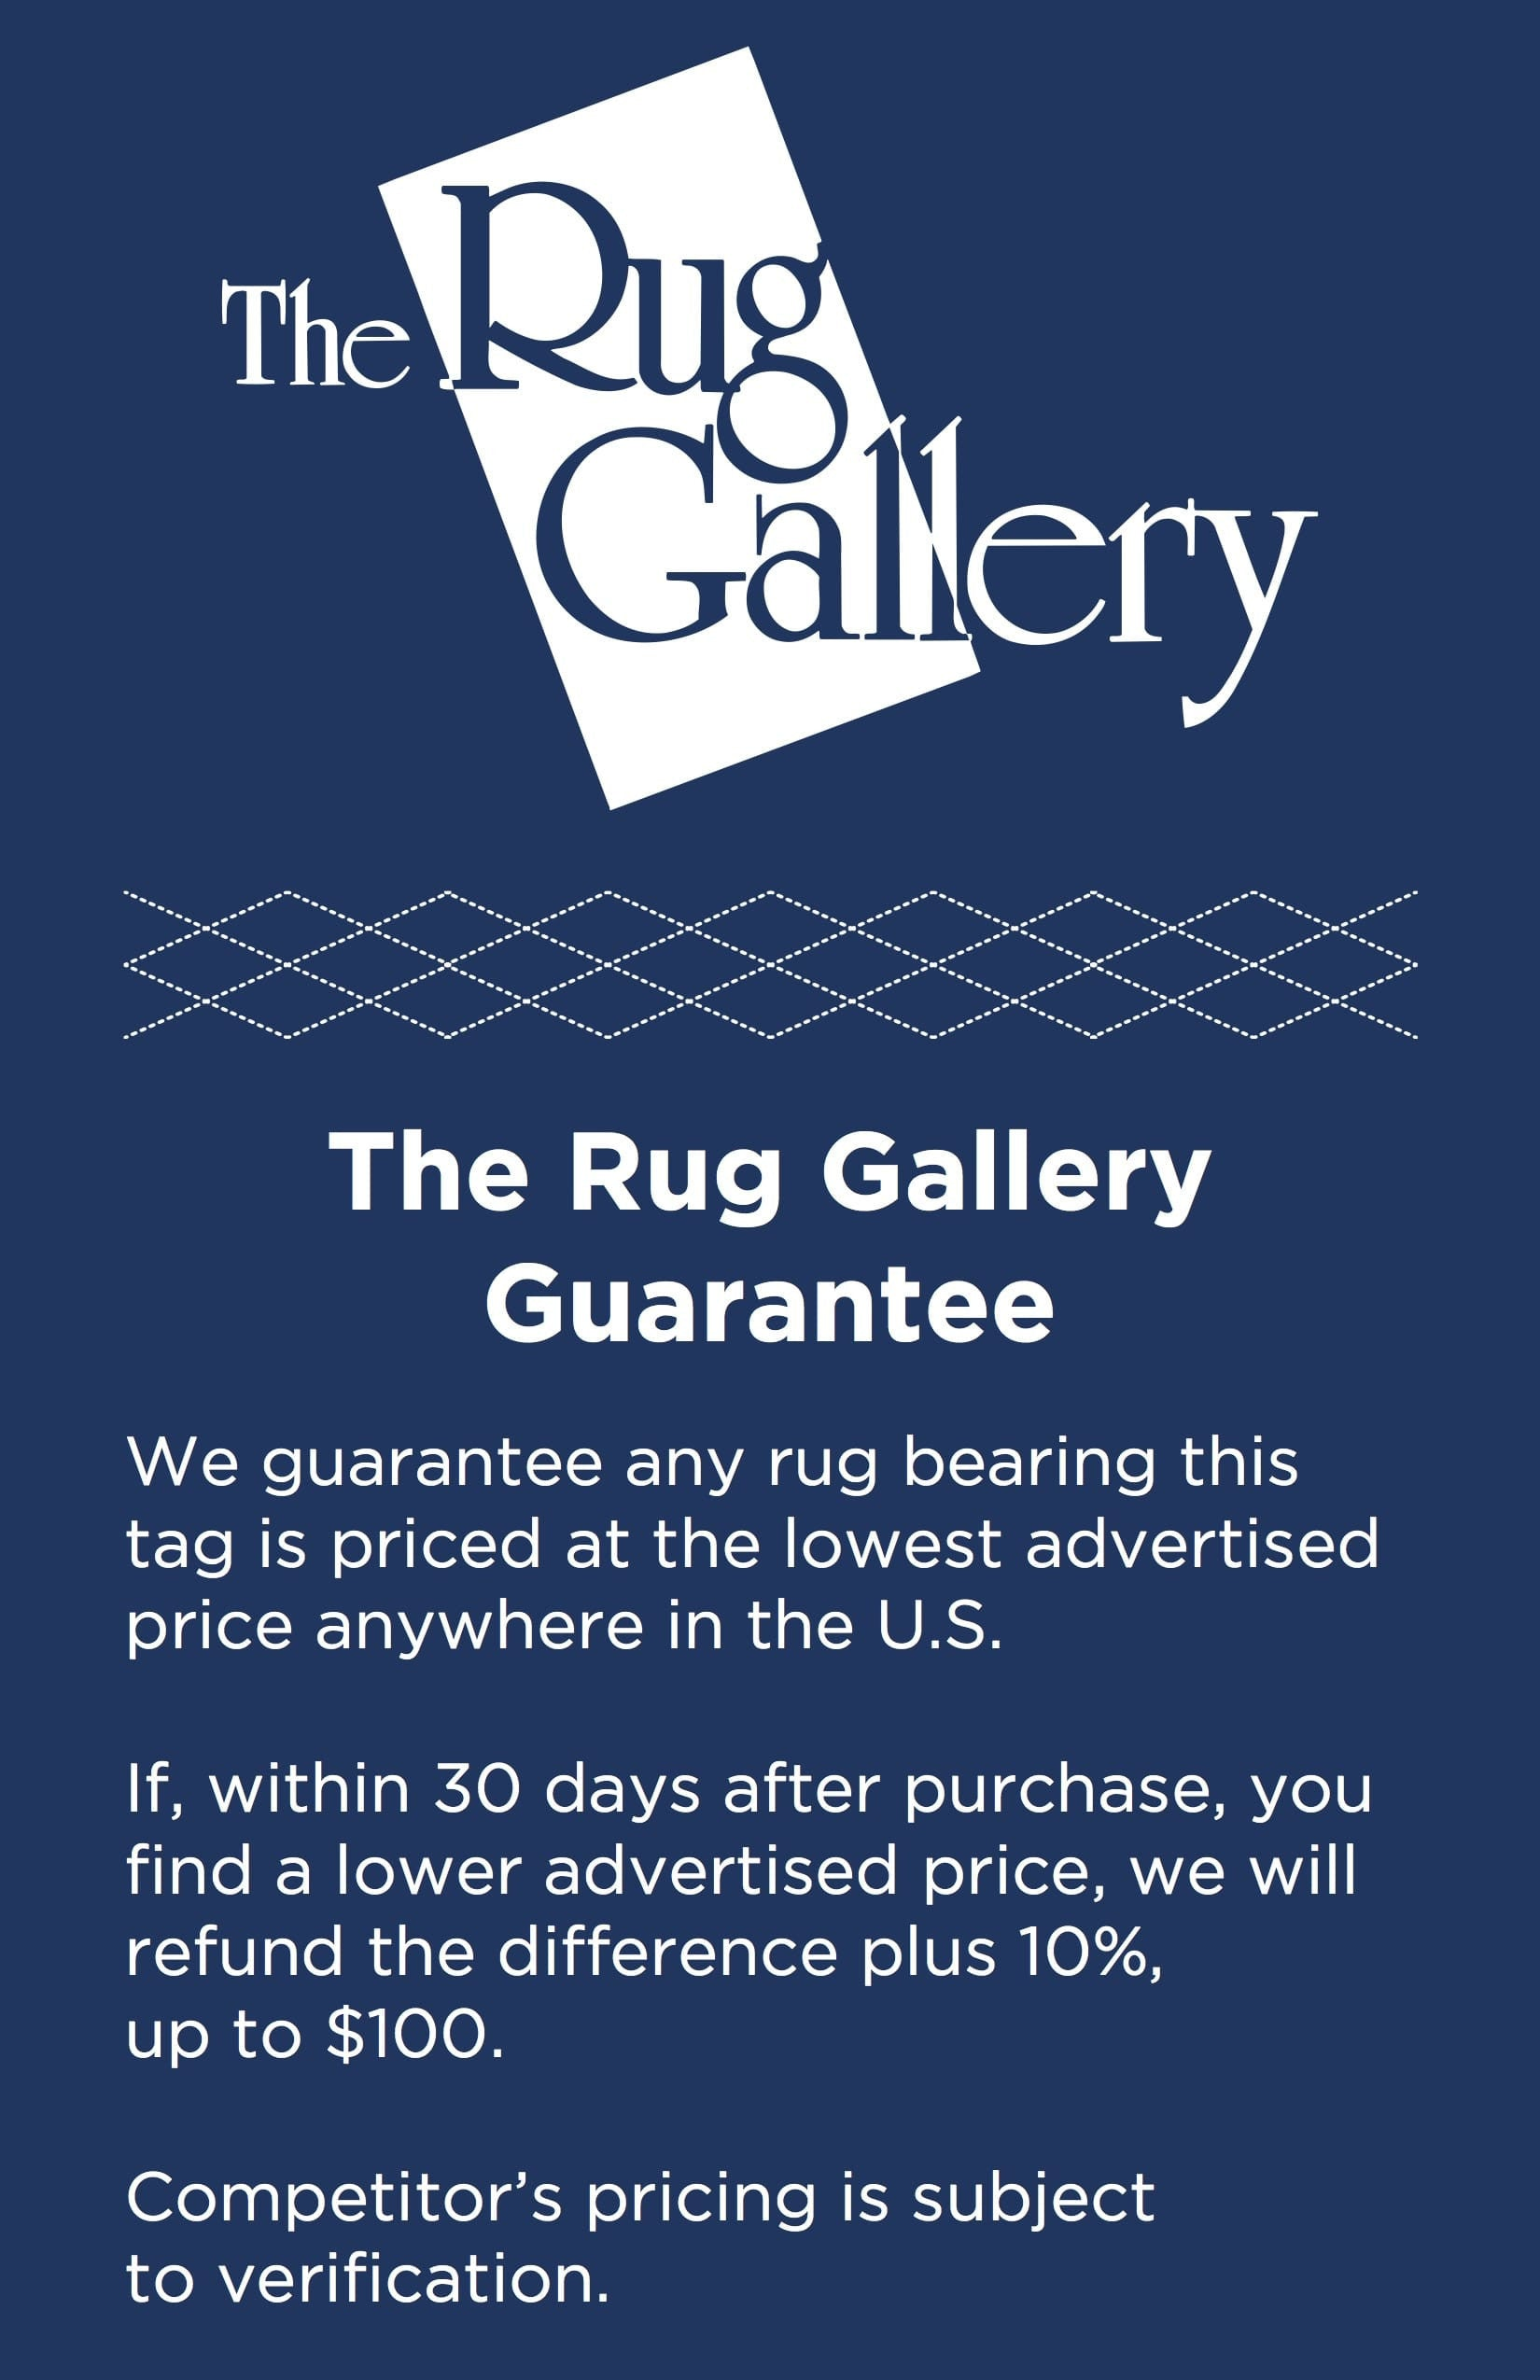 Rug Gallery Guarantee